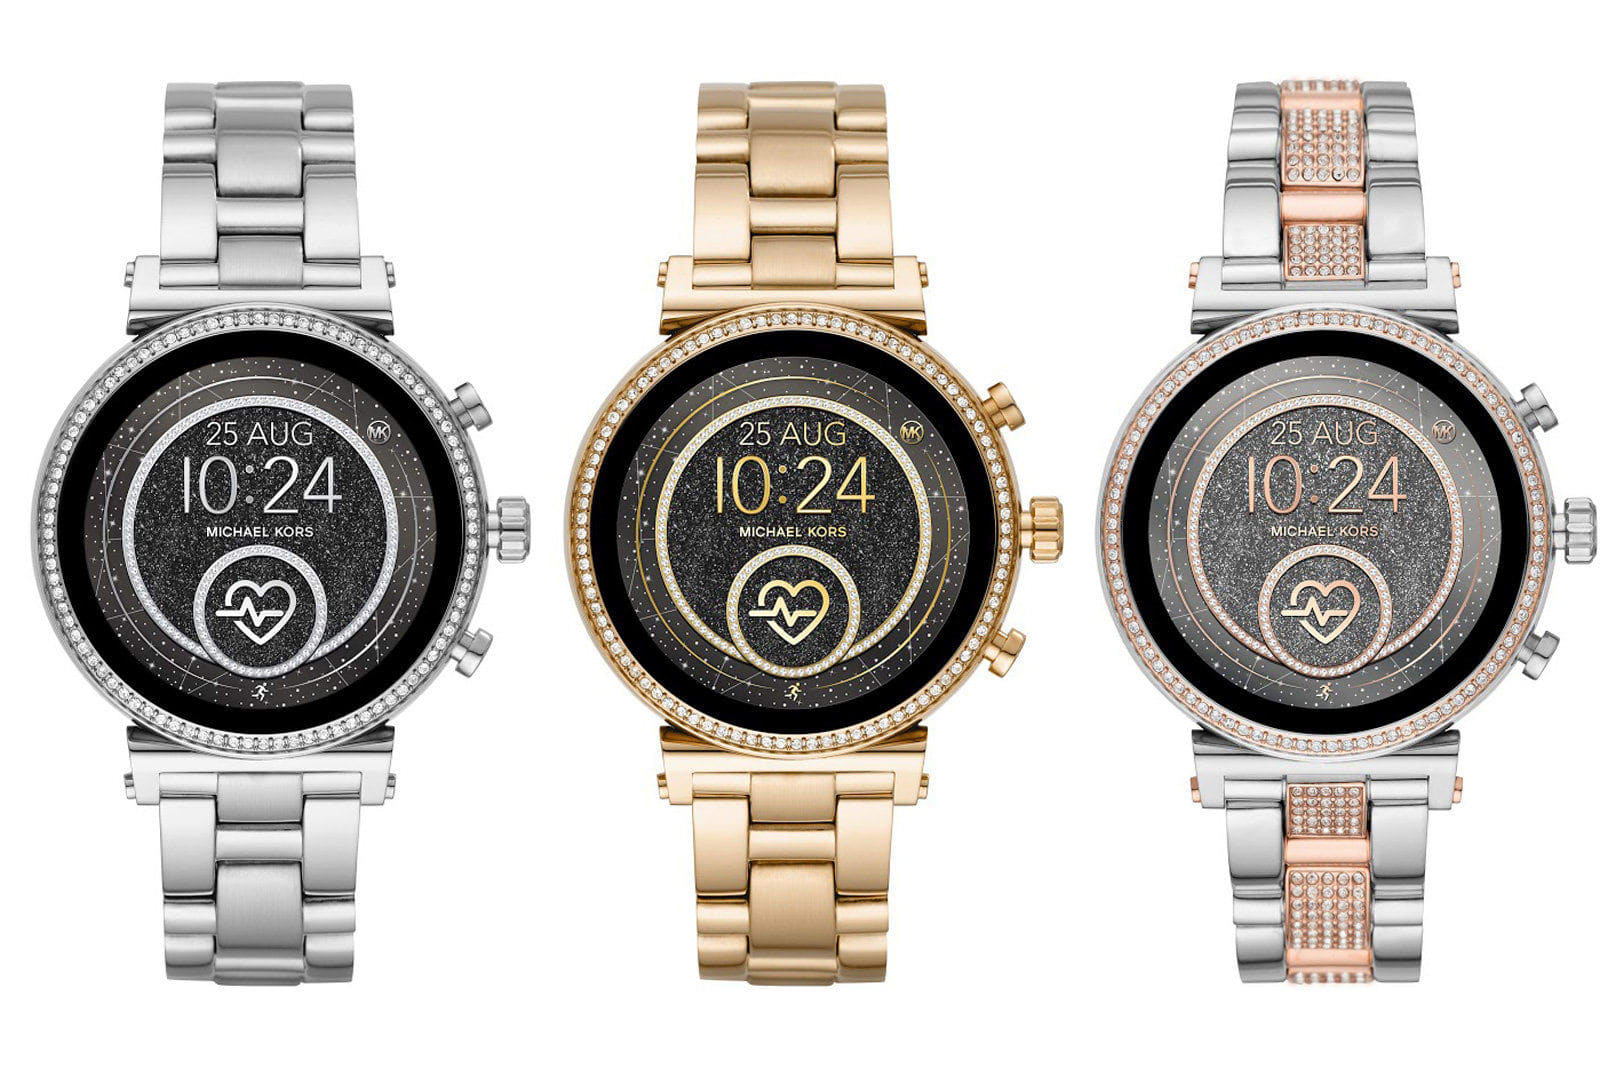 4b30bcc73f71 Michael Kors  updated Sofie smartwatch is now available for  325